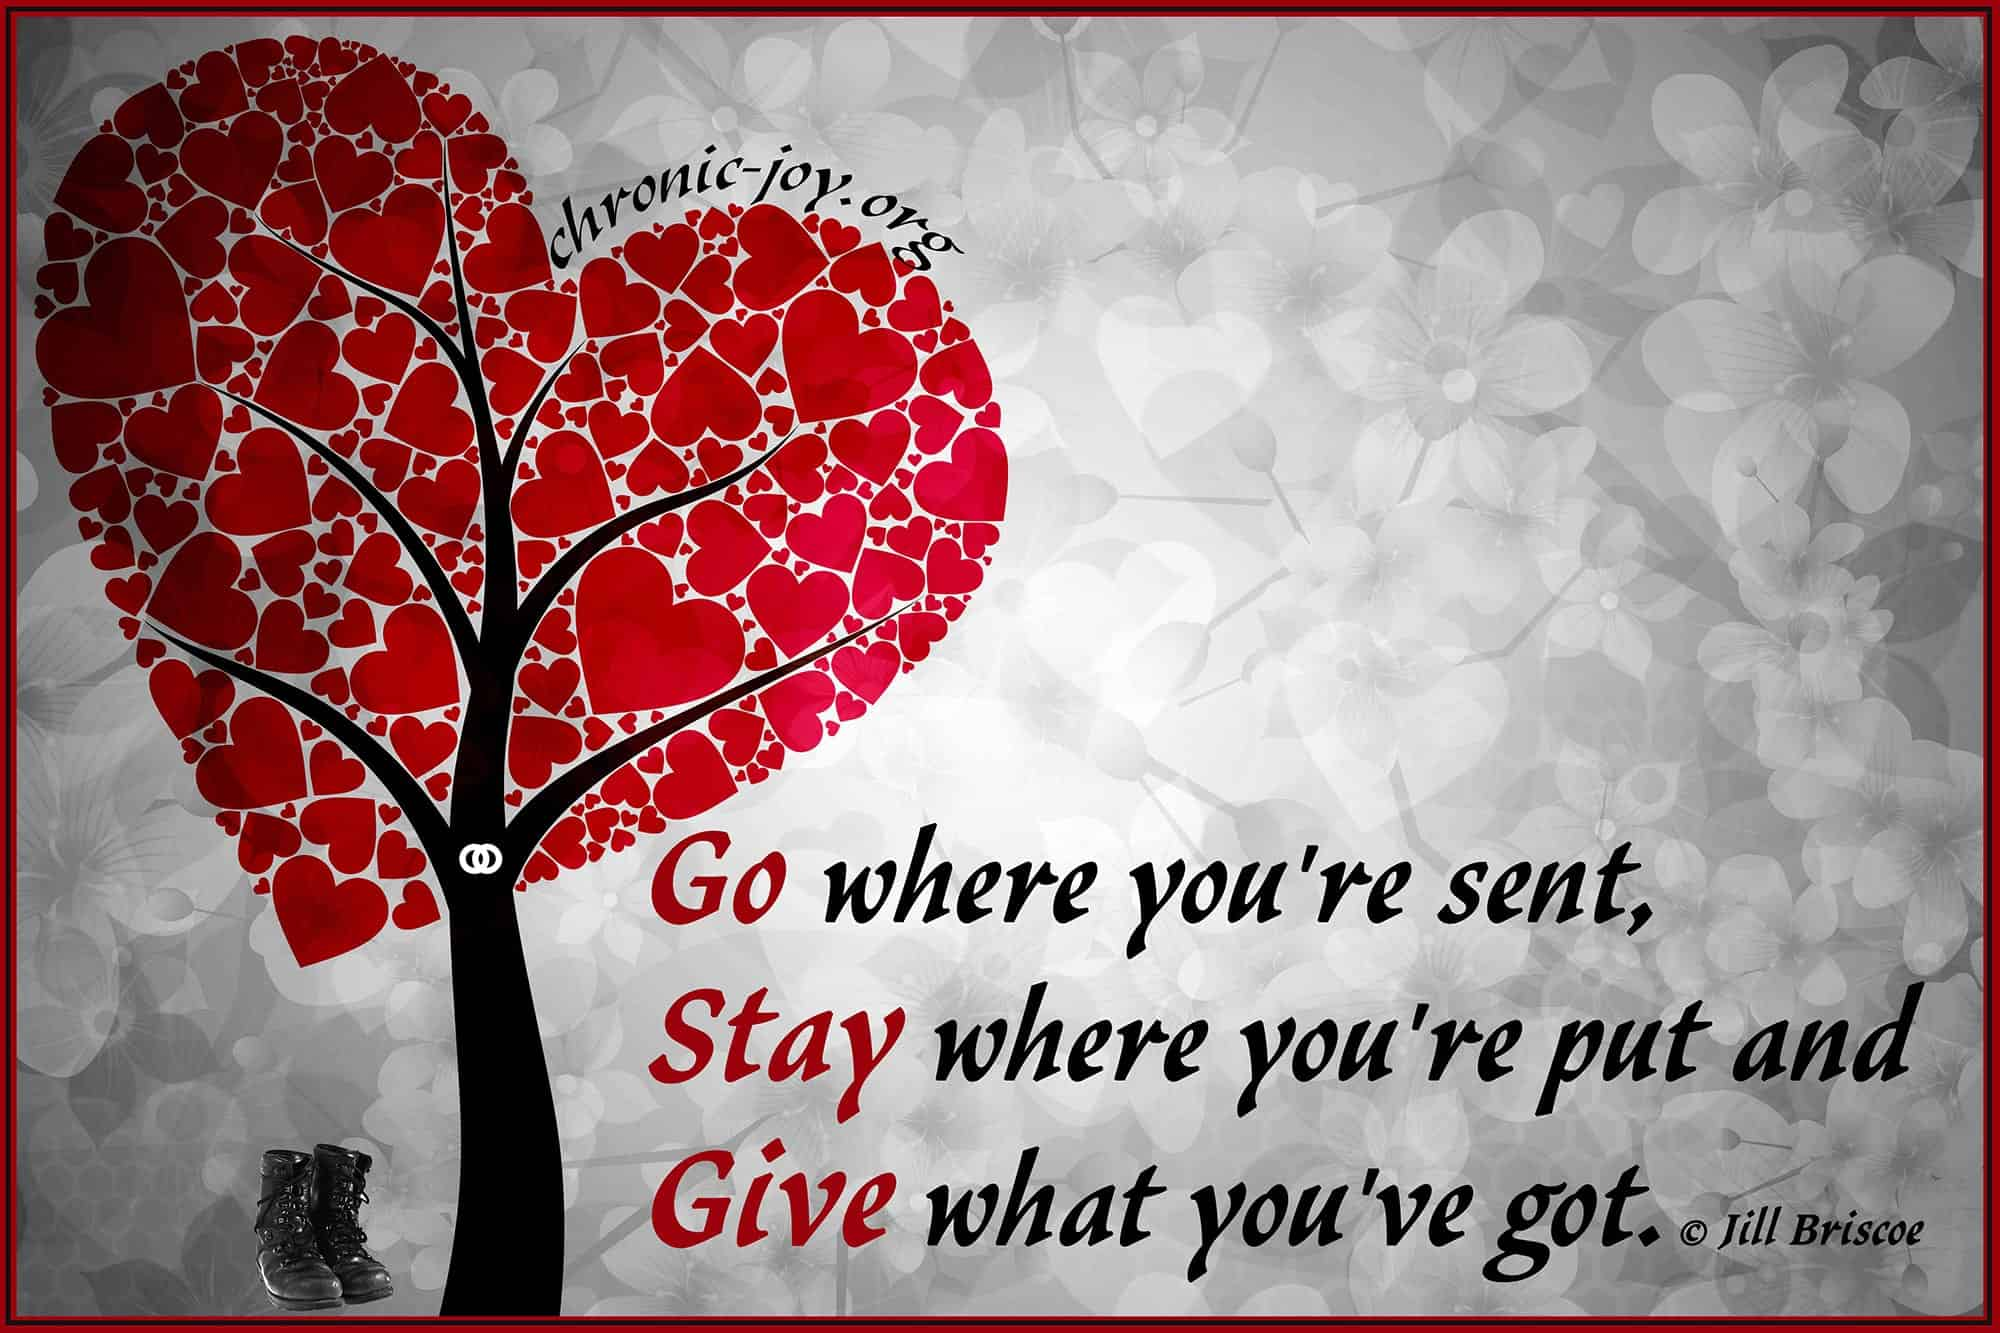 Go, Stay, and Give